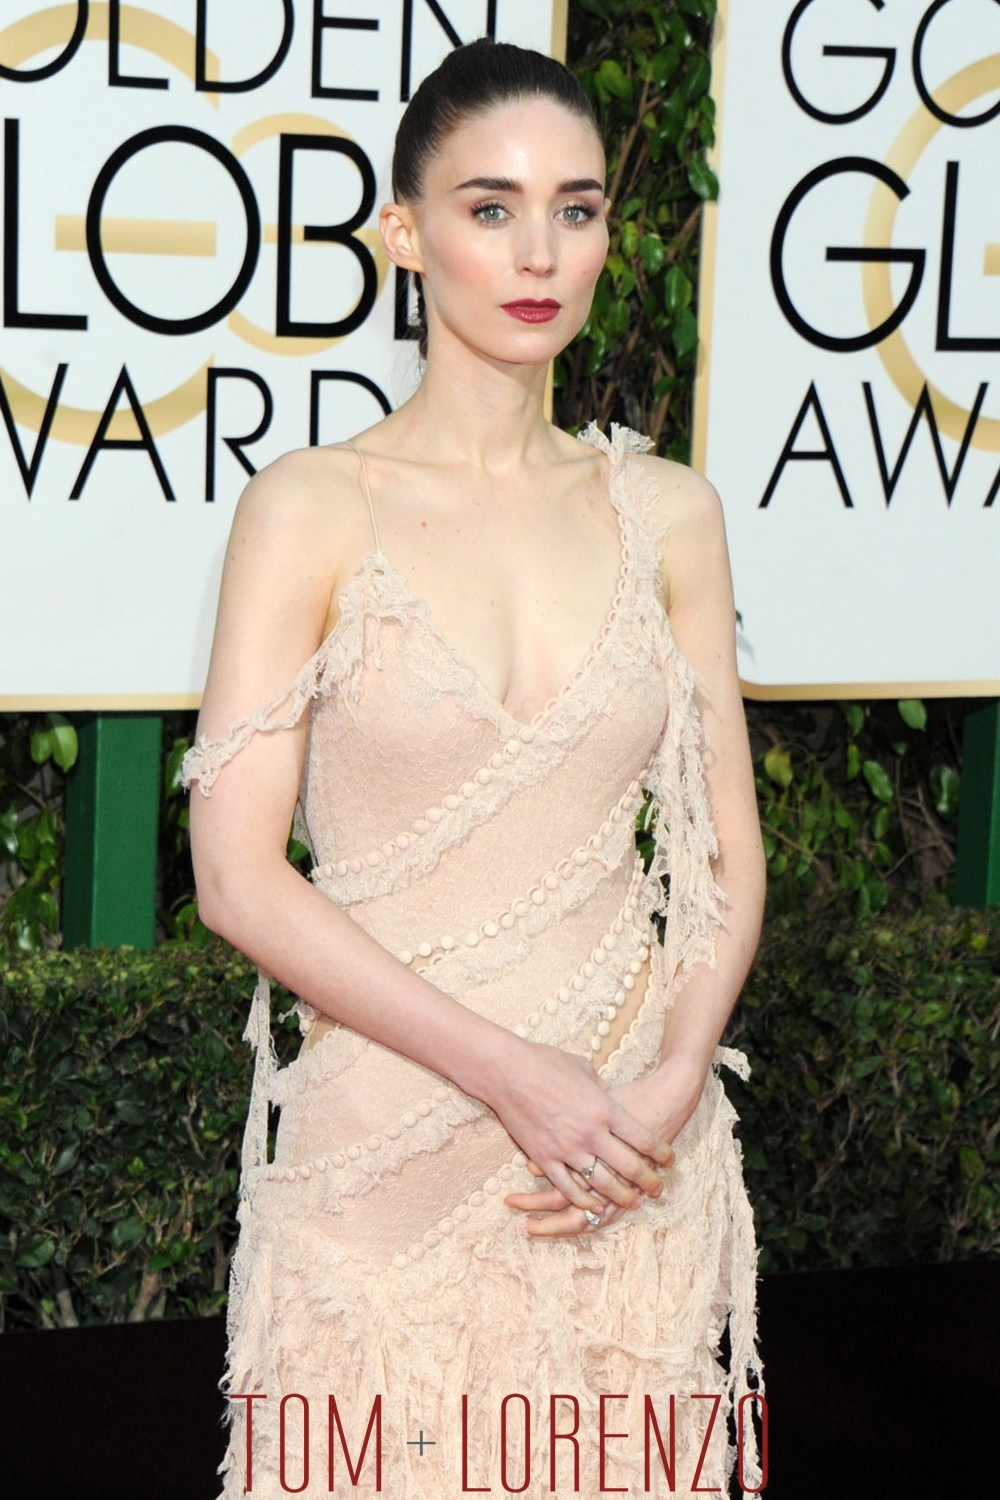 Rooney-Mara-Golden-Globes-2016-Red-Carpet-Fashion-Alexander-McQueen-Tom-Lorenzo-Site (1)